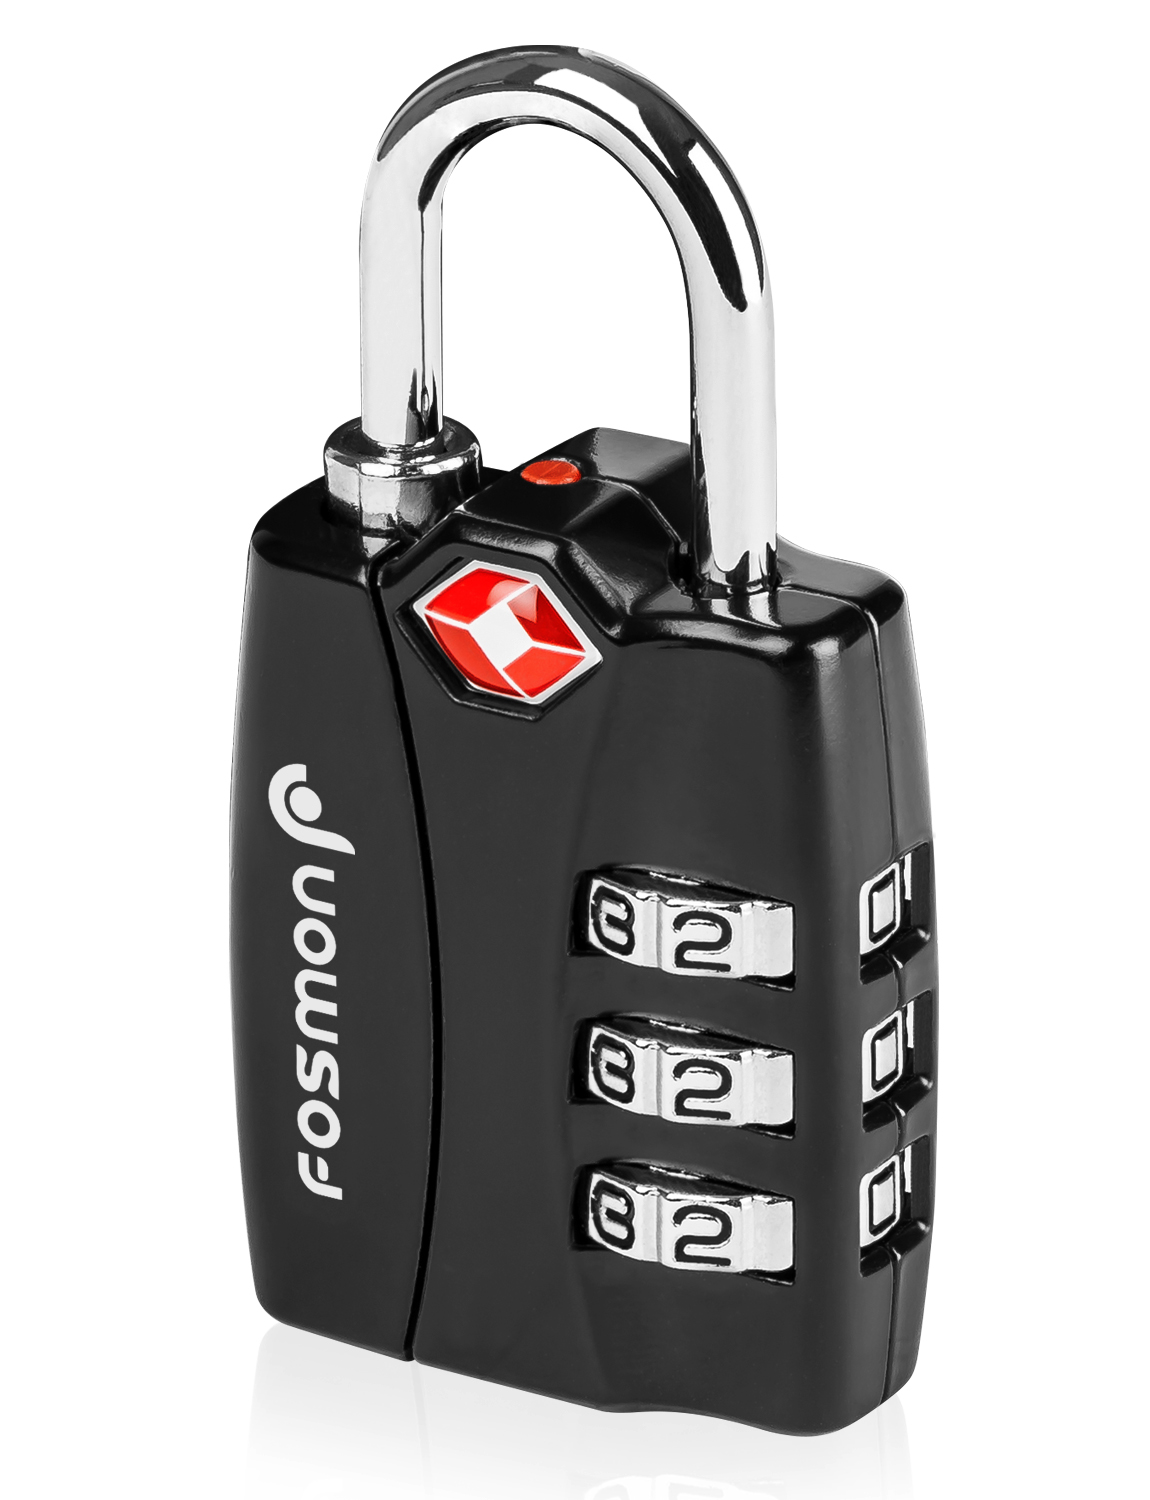 TSA Approved Luggage Locks, Fosmon Open Alert Indicator 3 Digit Combination Padlock Codes with Alloy Body for Travel Bag, Suit Case, Lockers, Gym, Bike Locks or Other